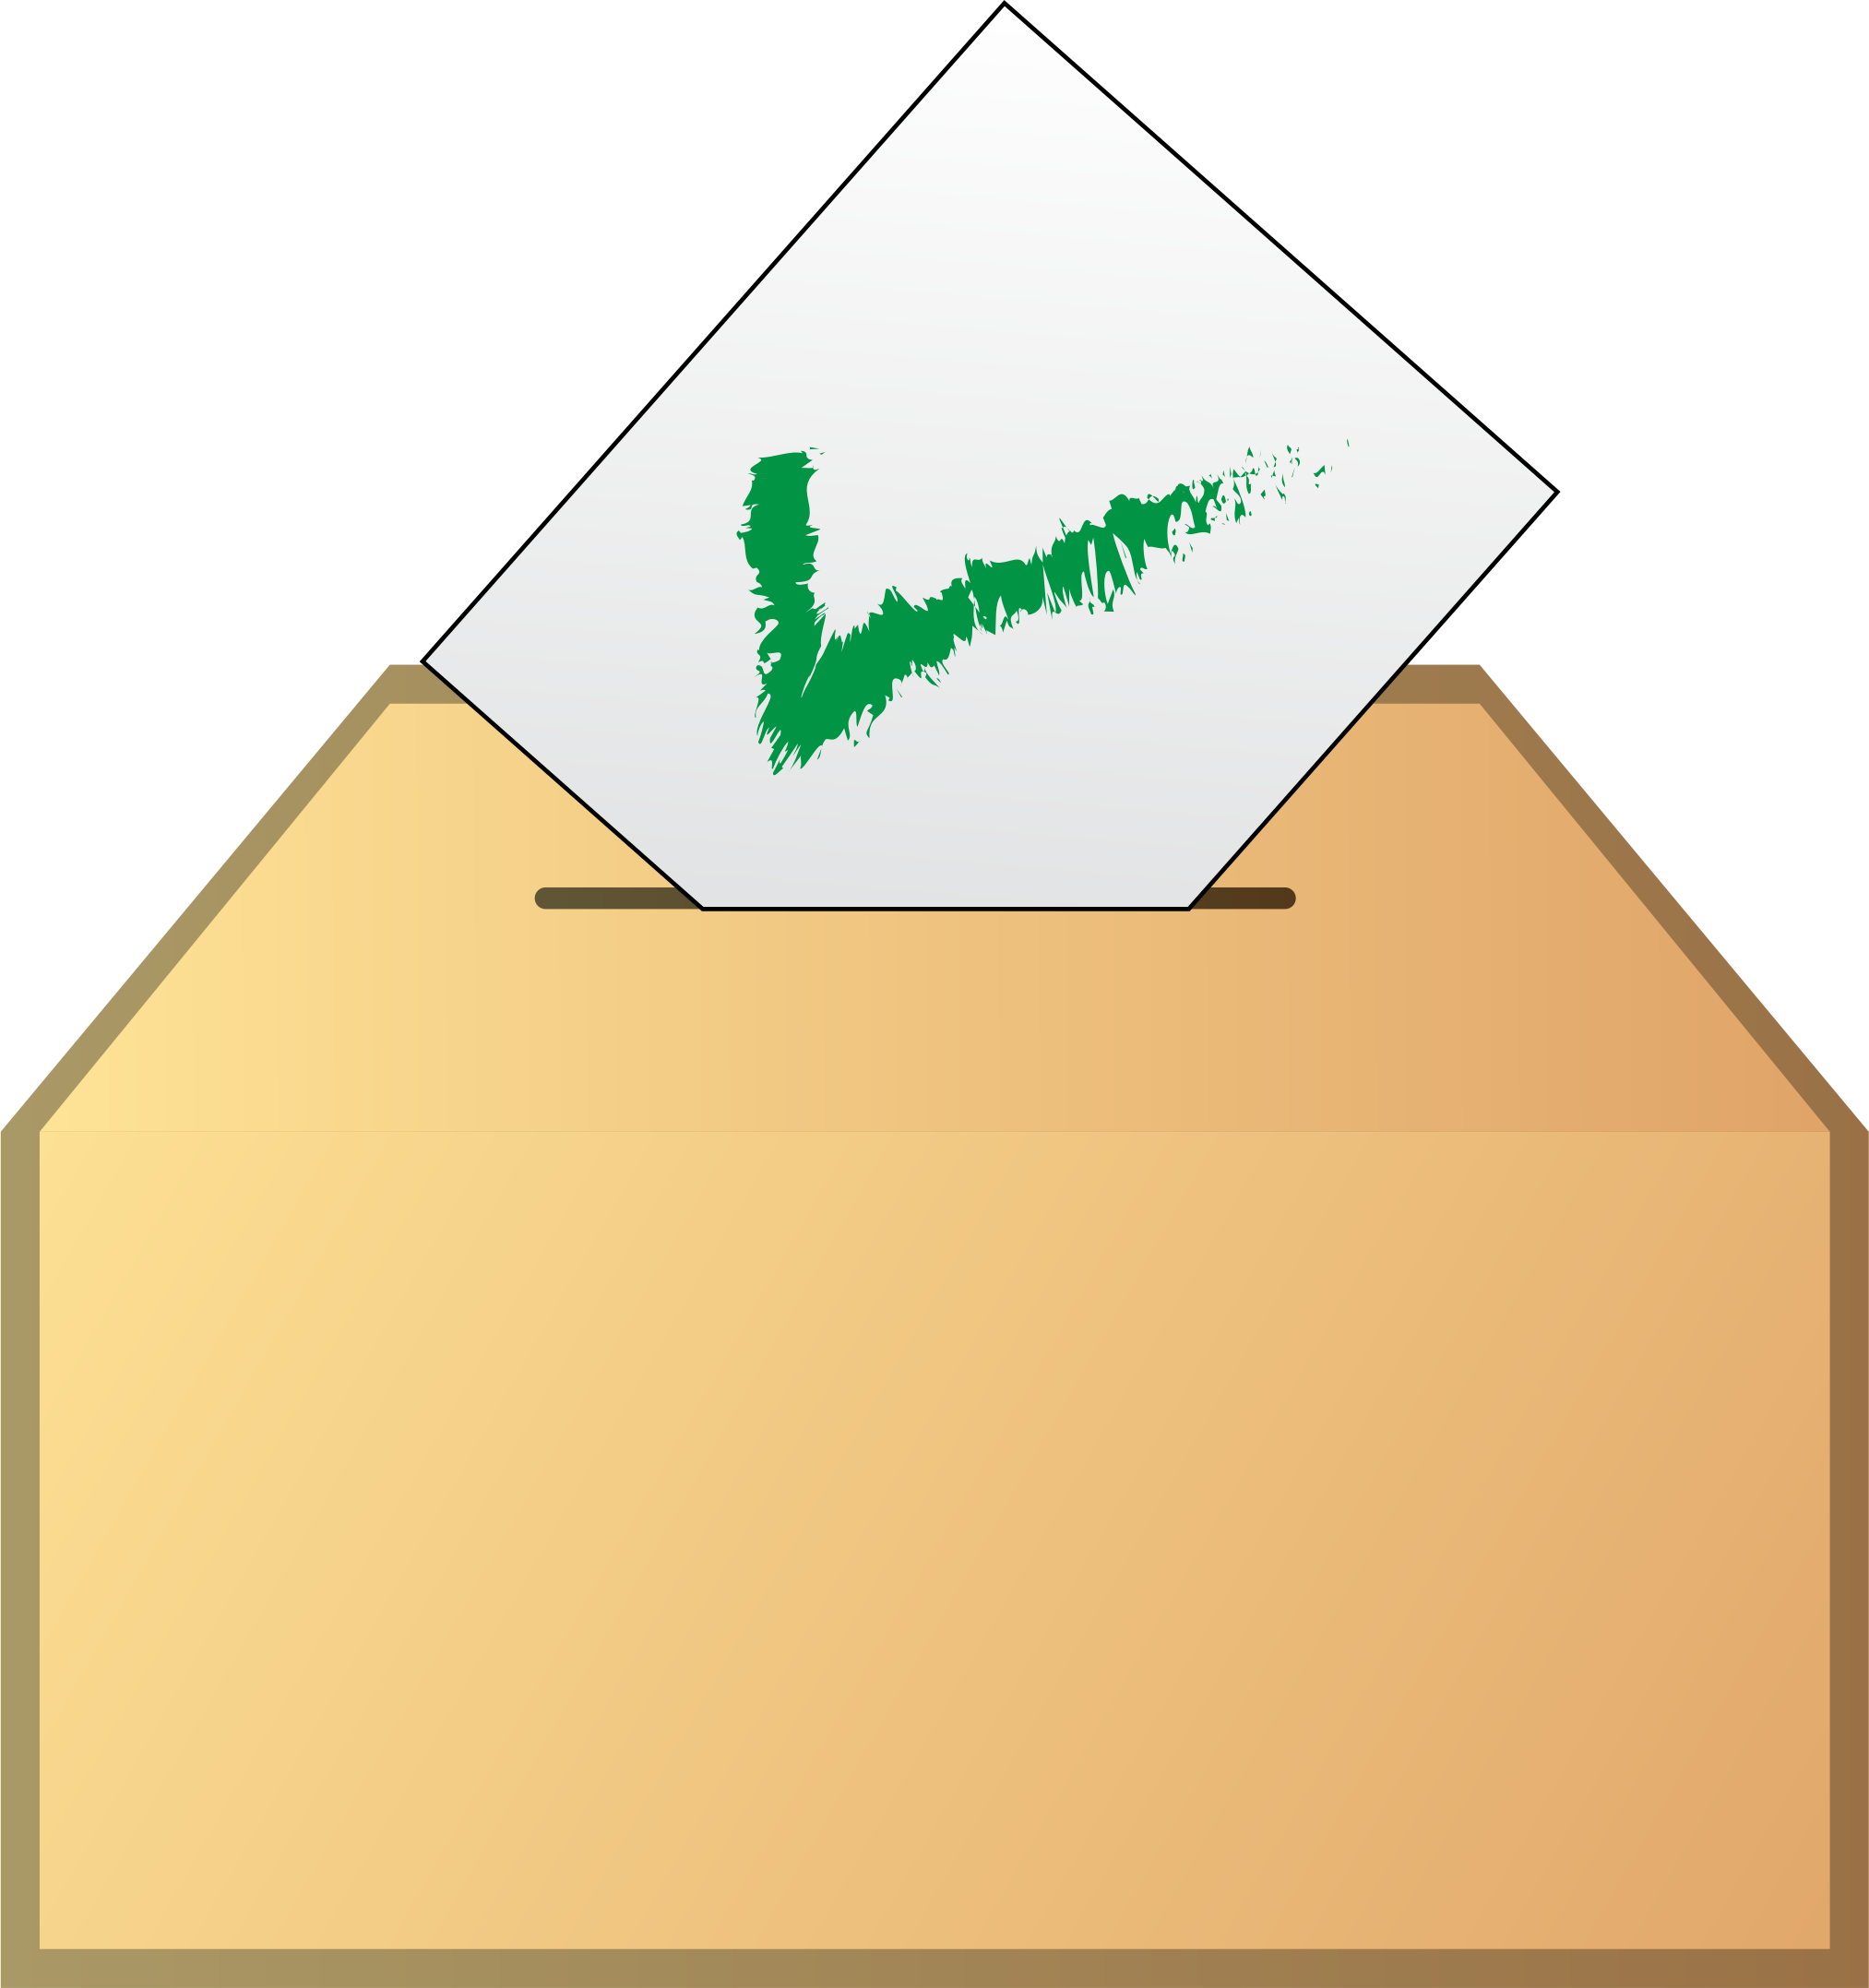 Vote yes icon by jhnri4